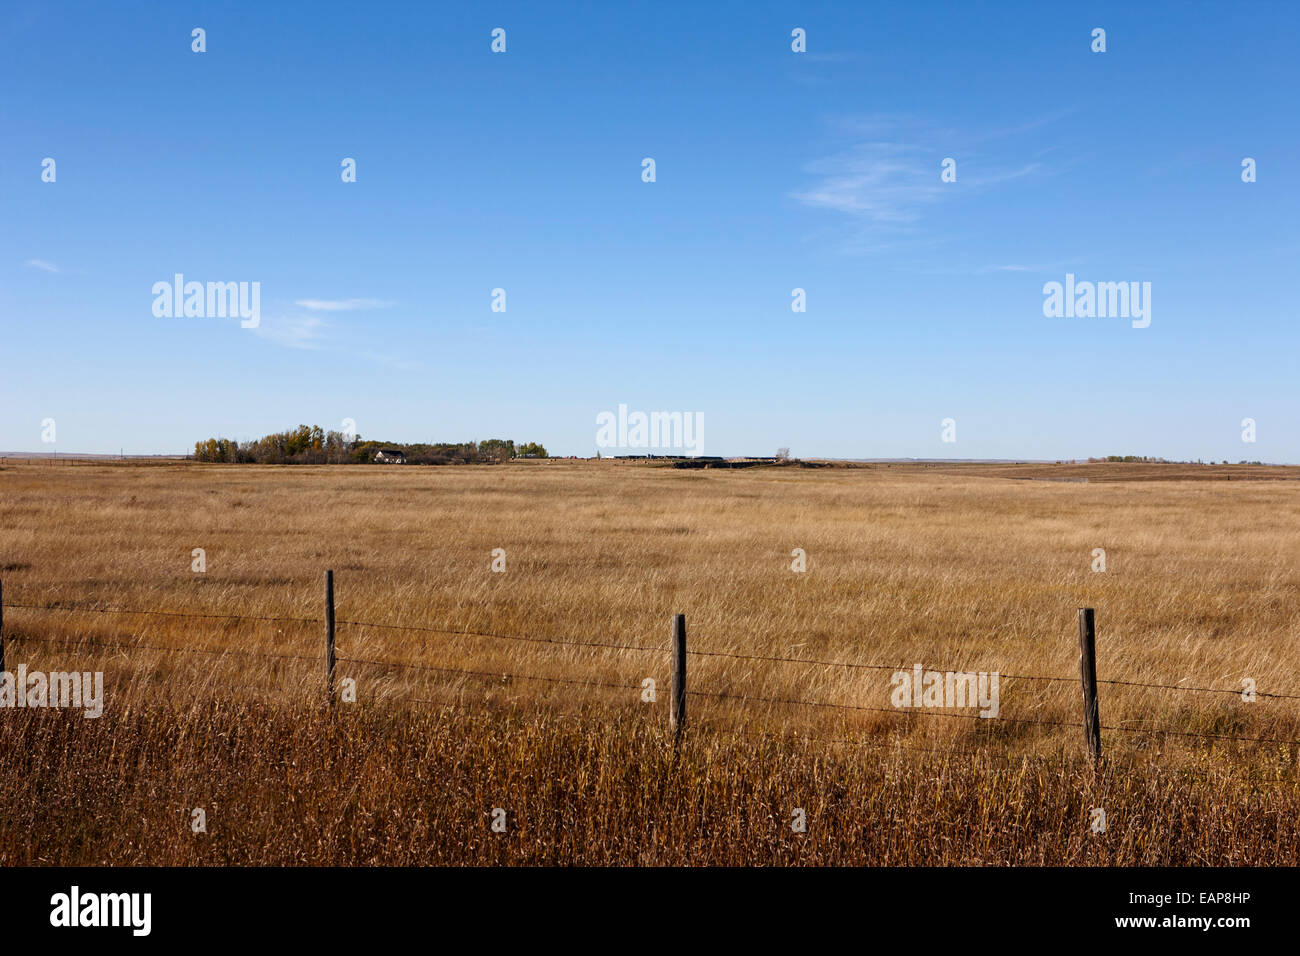 rural prairie grassland and farmland in open fields bengough Saskatchewan Canada - Stock Image